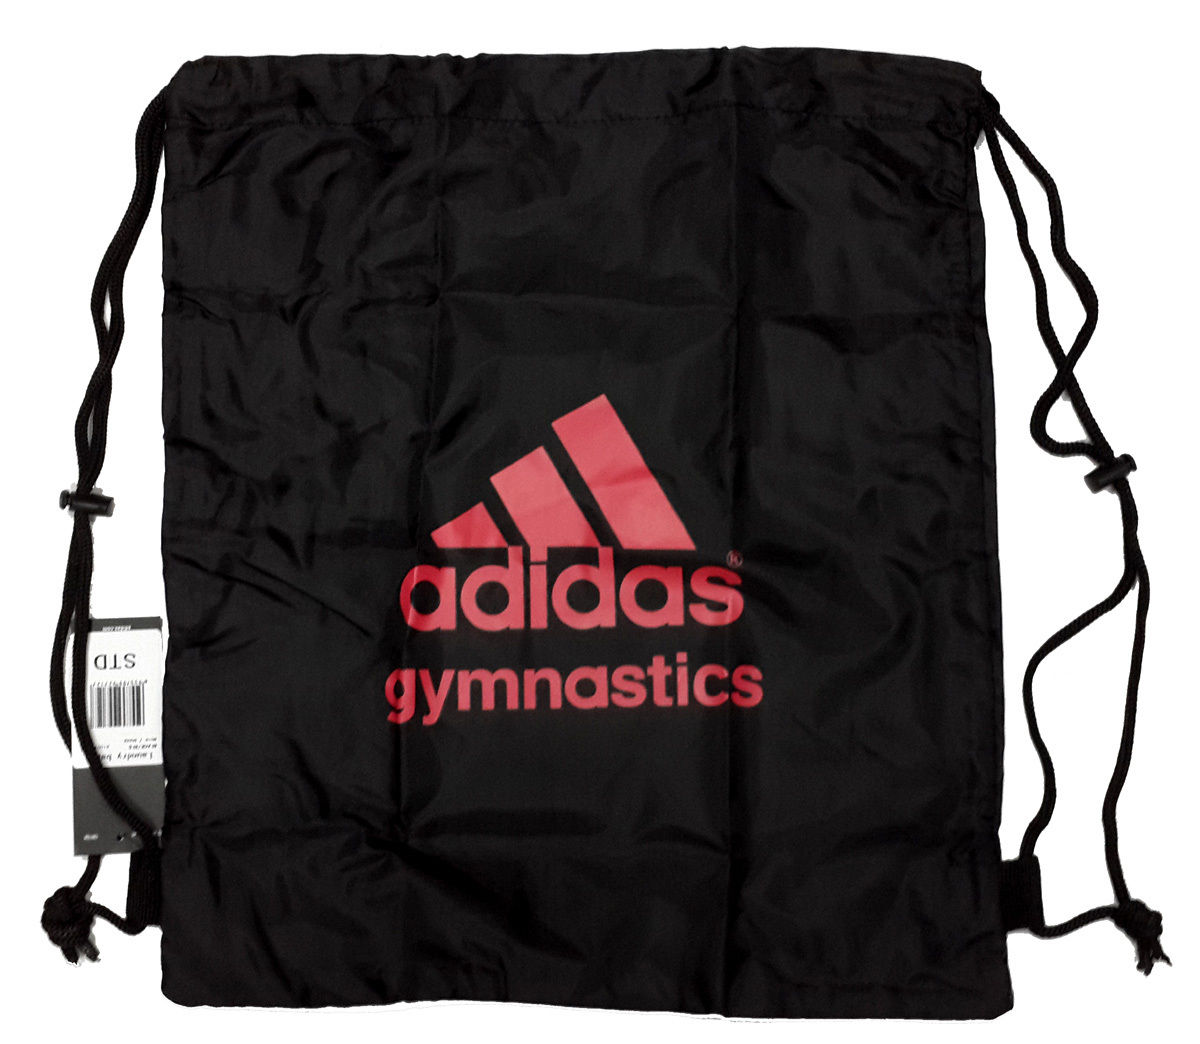 Adidas Gymnastics Gear Bag